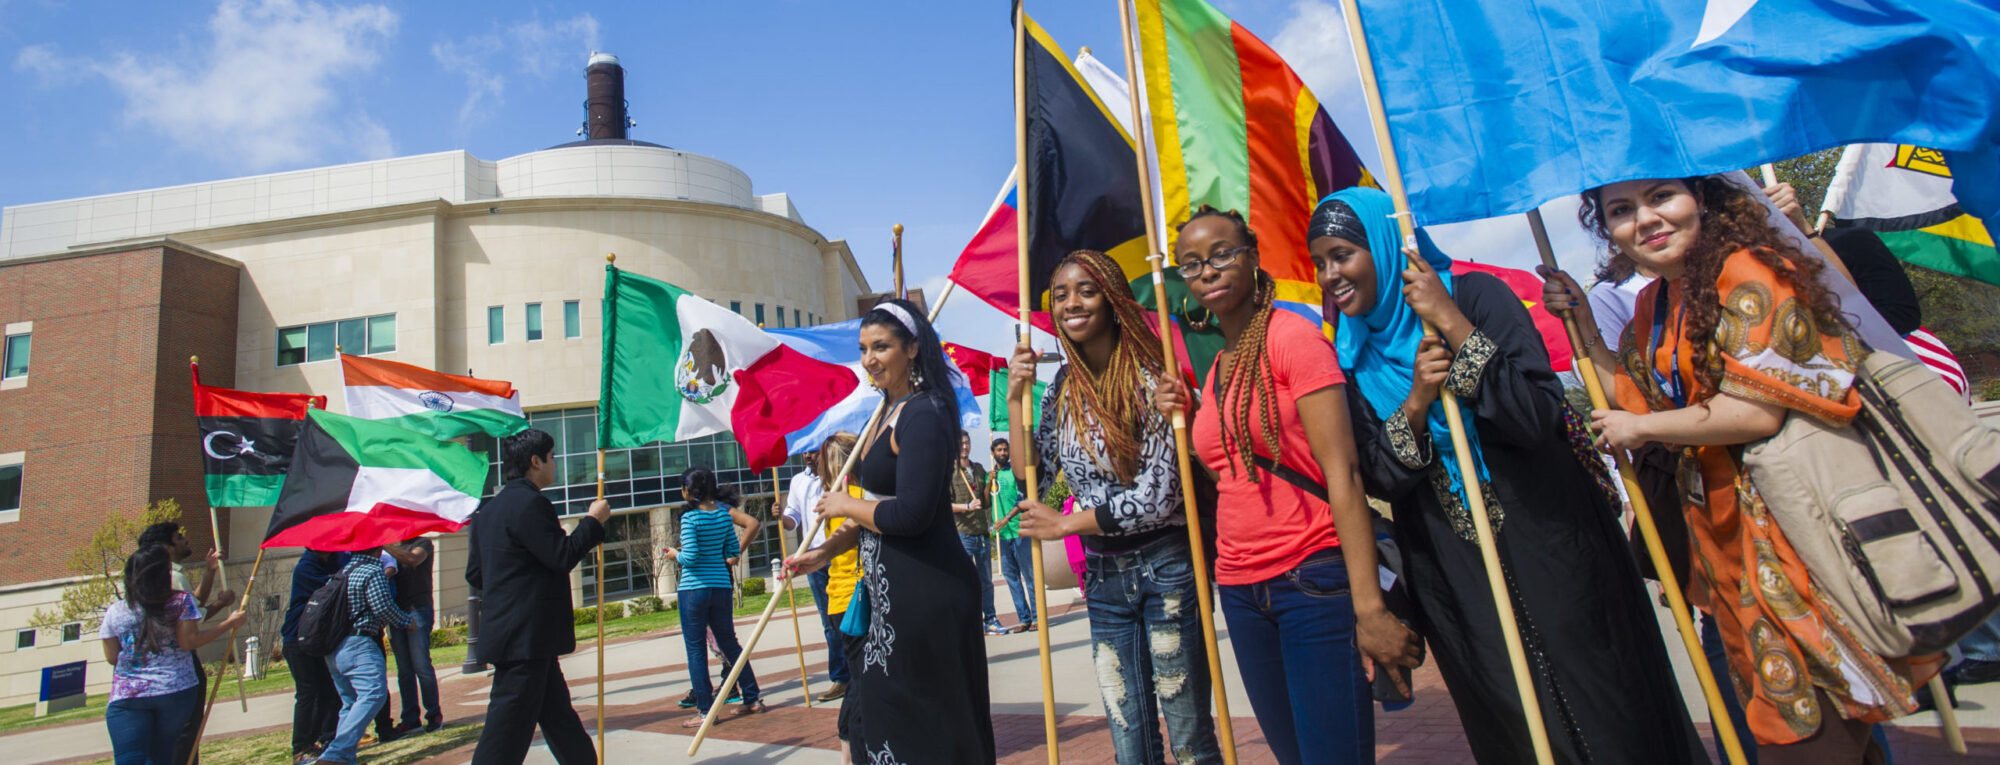 14105-event-multicultural-fest-flag-ceremony-2671-scaled-e1587155928820